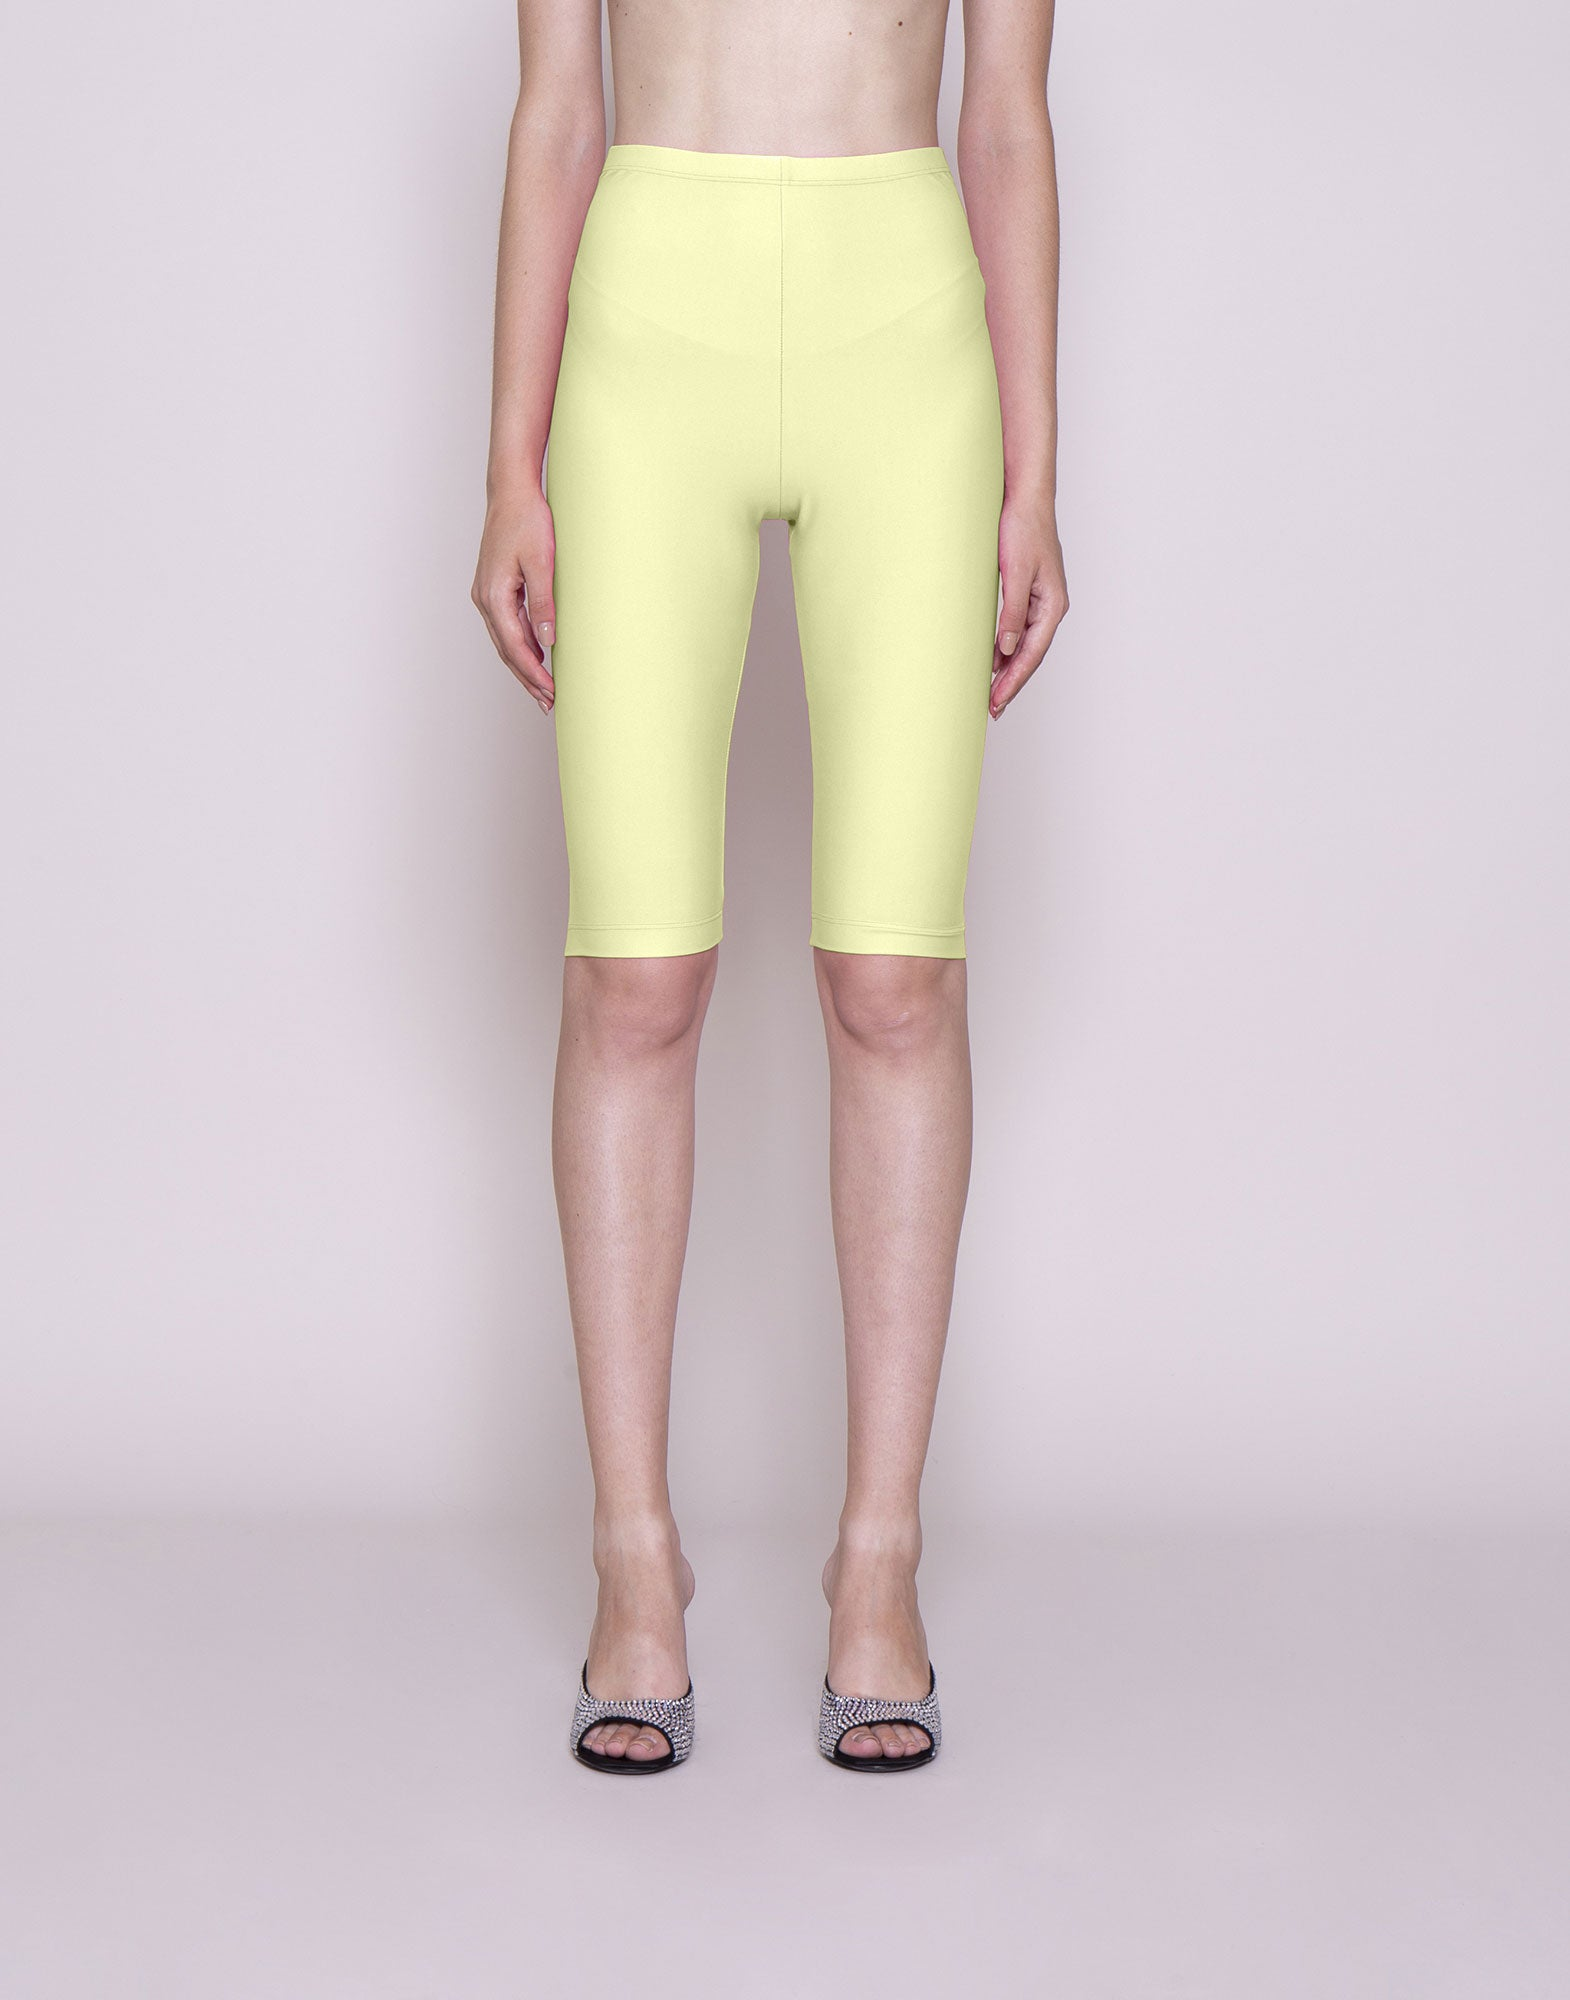 Yellow lycra biker shorts | NEW ARRIVALS